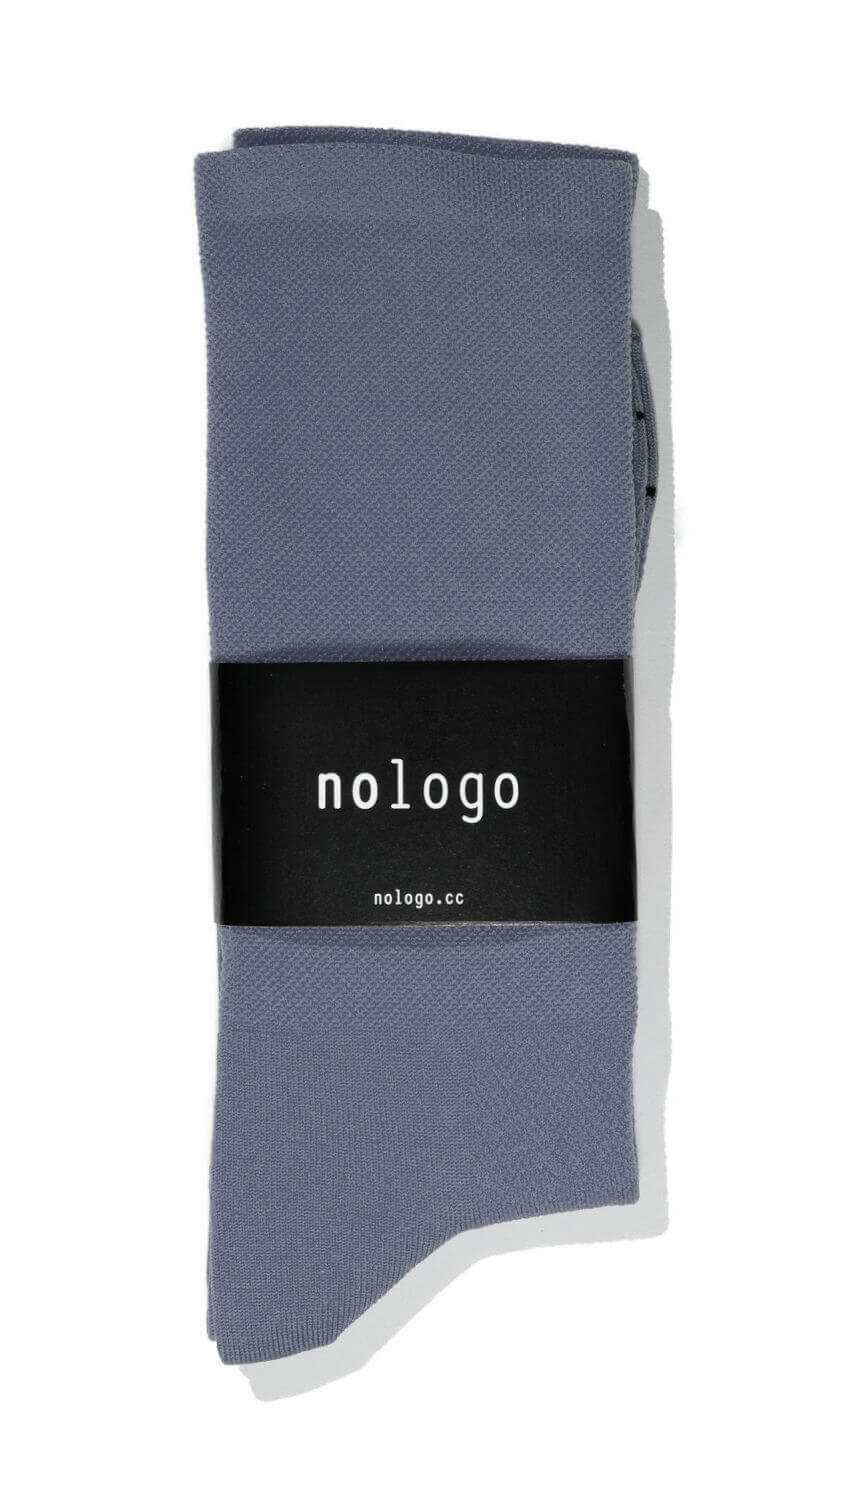 premium nologo slate gray cycling socks product photo